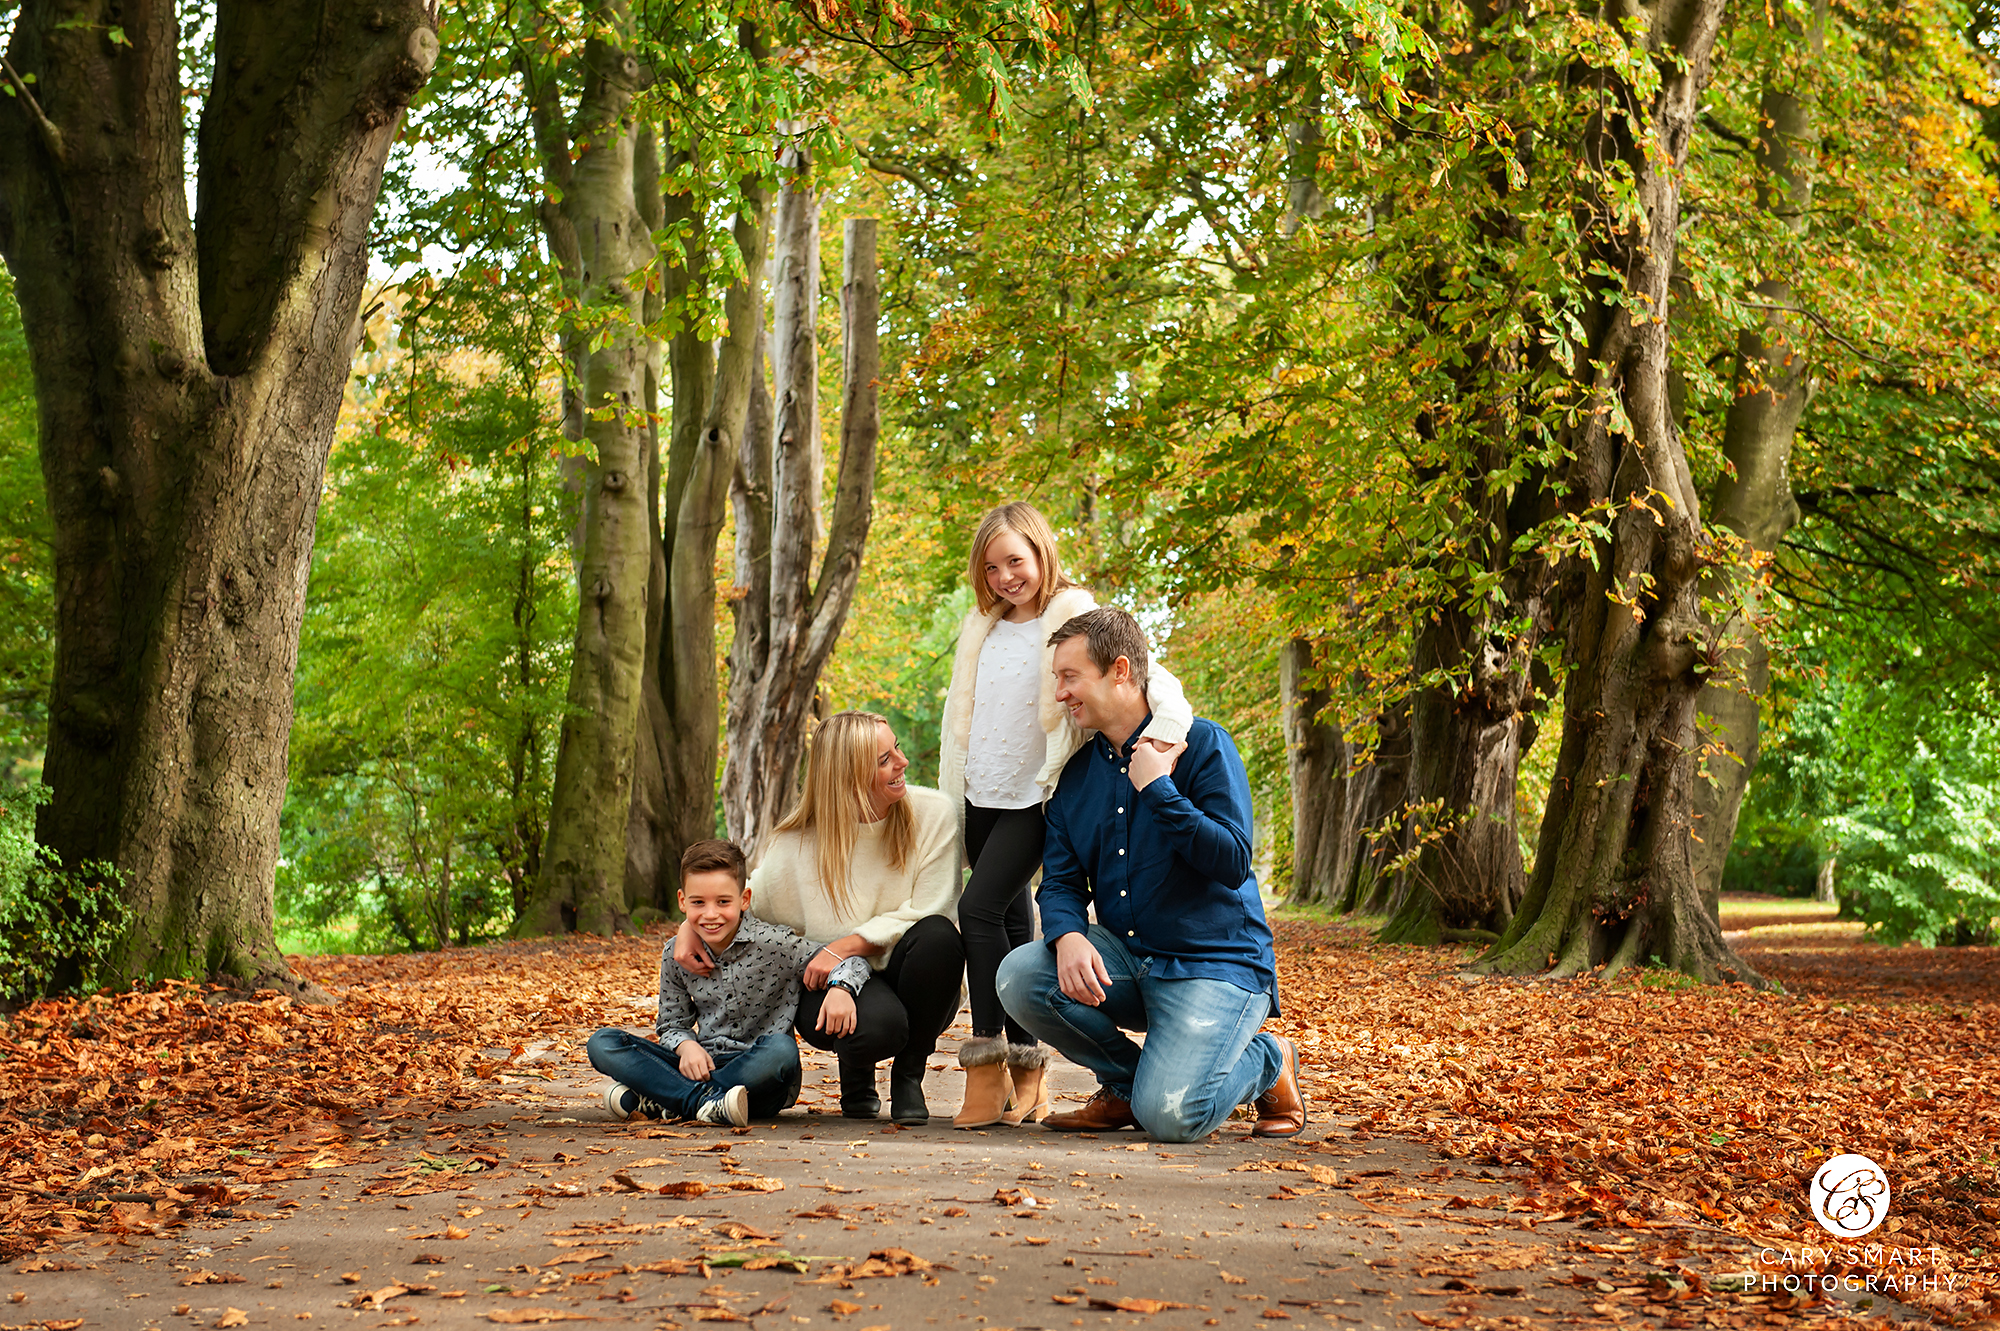 Family photo session in the woods in Caldicot near Newport